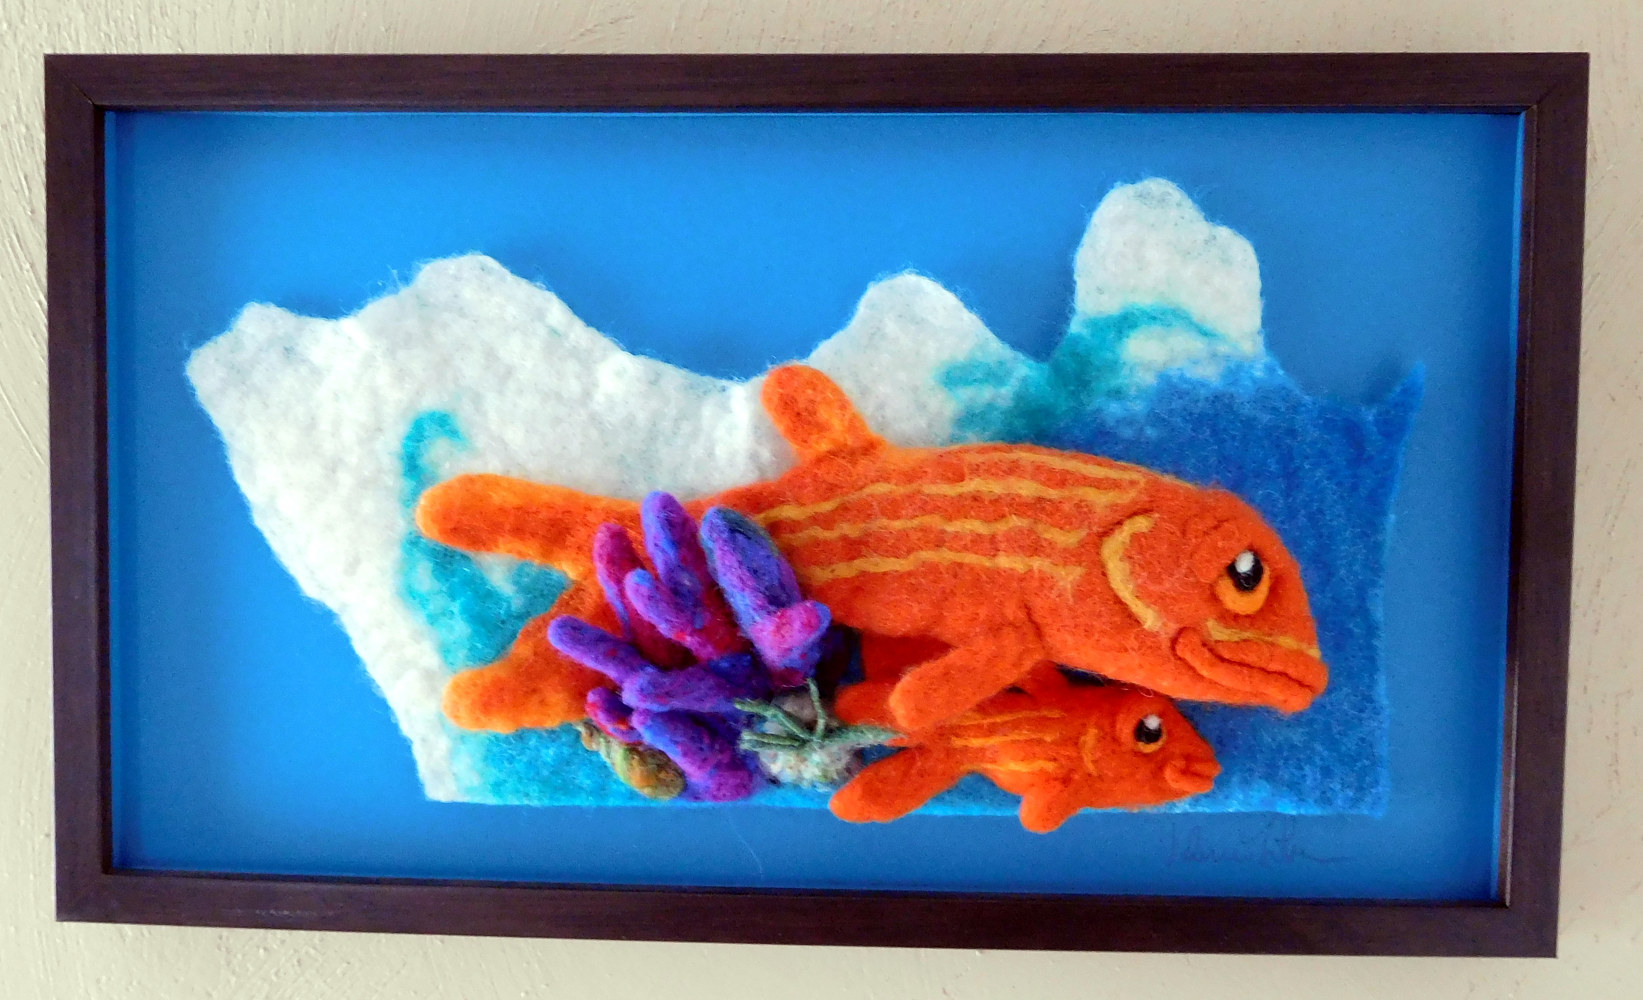 Orange Striped Fish by Valerie Johnson